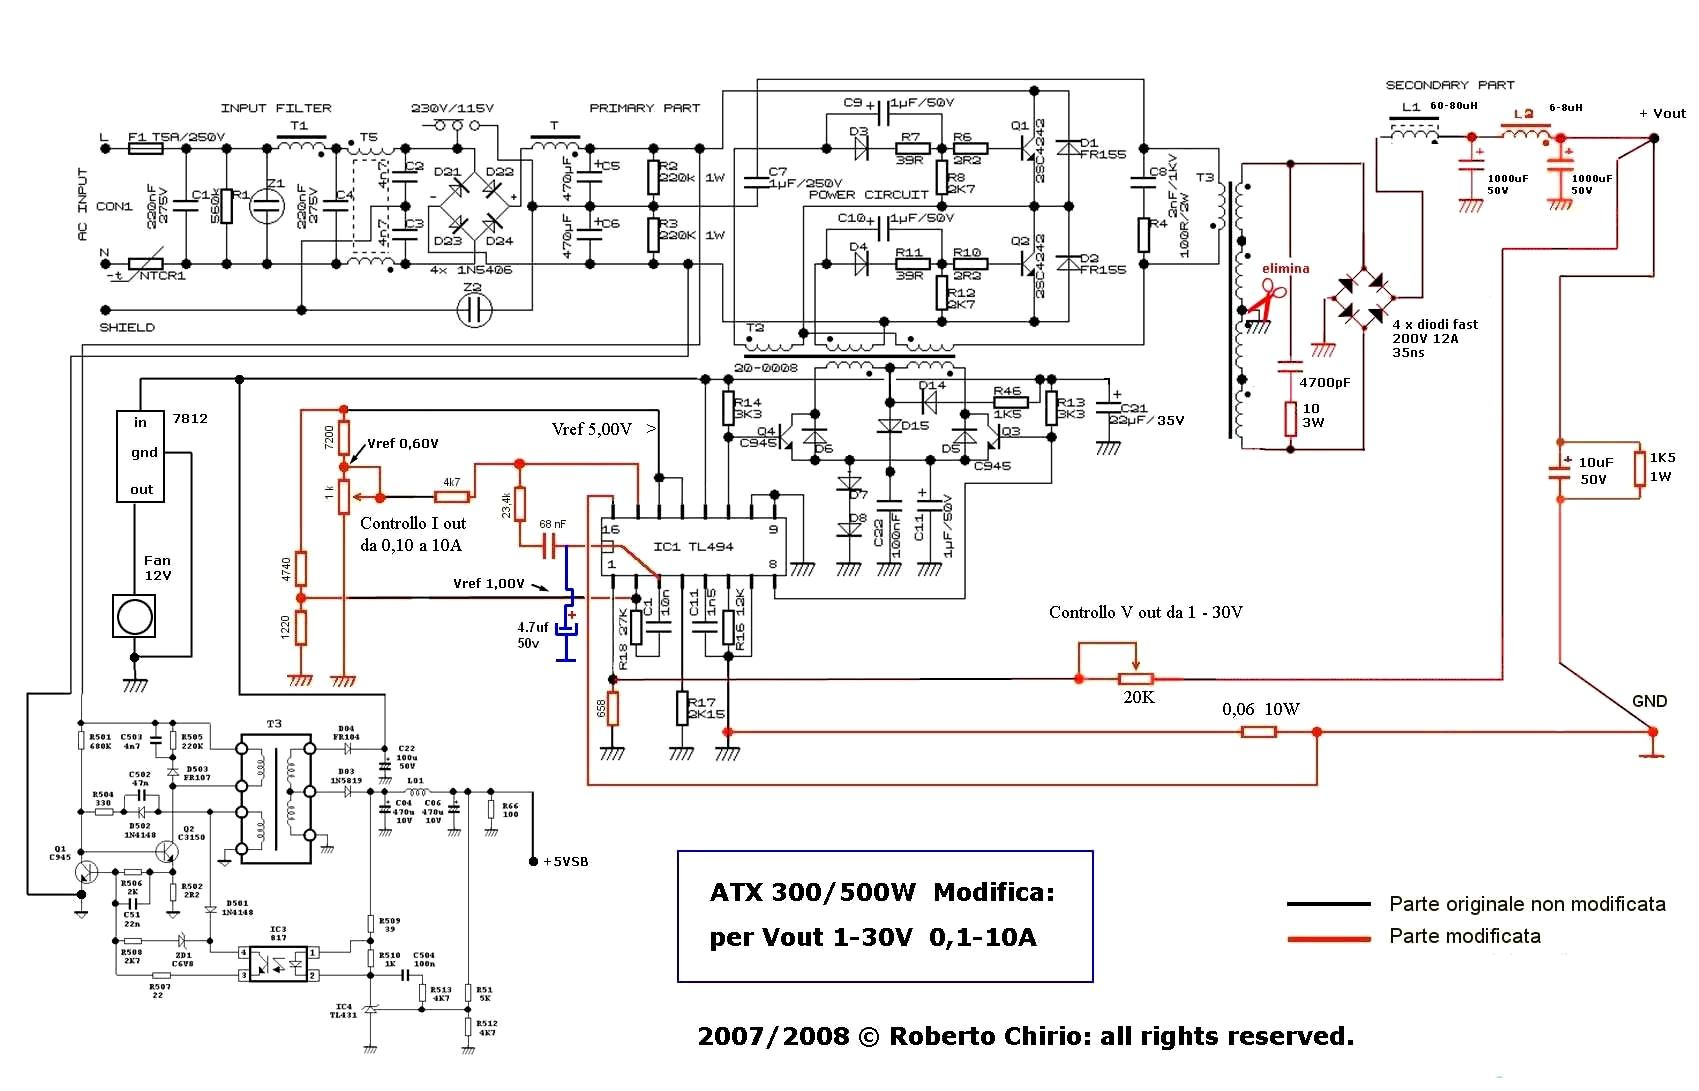 65ebaee70843afb05b130fc240781086 psu wiring diagram xbox 360 psu wiring diagram \u2022 wiring diagrams xbox 360 power supply wiring diagram at reclaimingppi.co